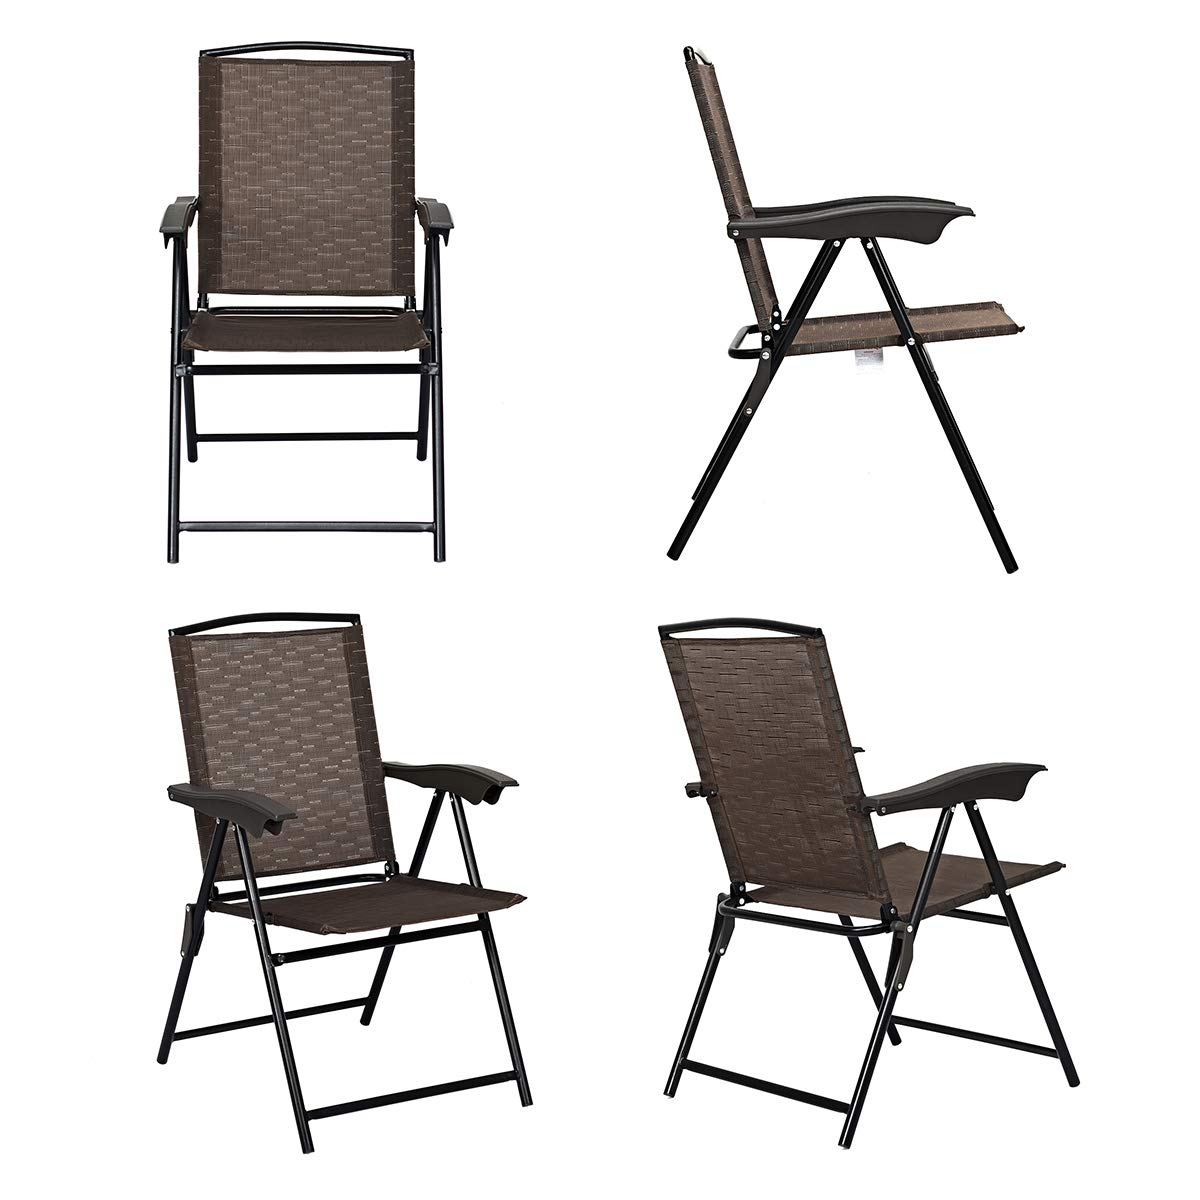 Goplus Sets of 4 Folding Sling Chairs Portable Chairs for Patio Garden Pool Outdoor & Indoor w/Armrests by Goplus (Image #5)